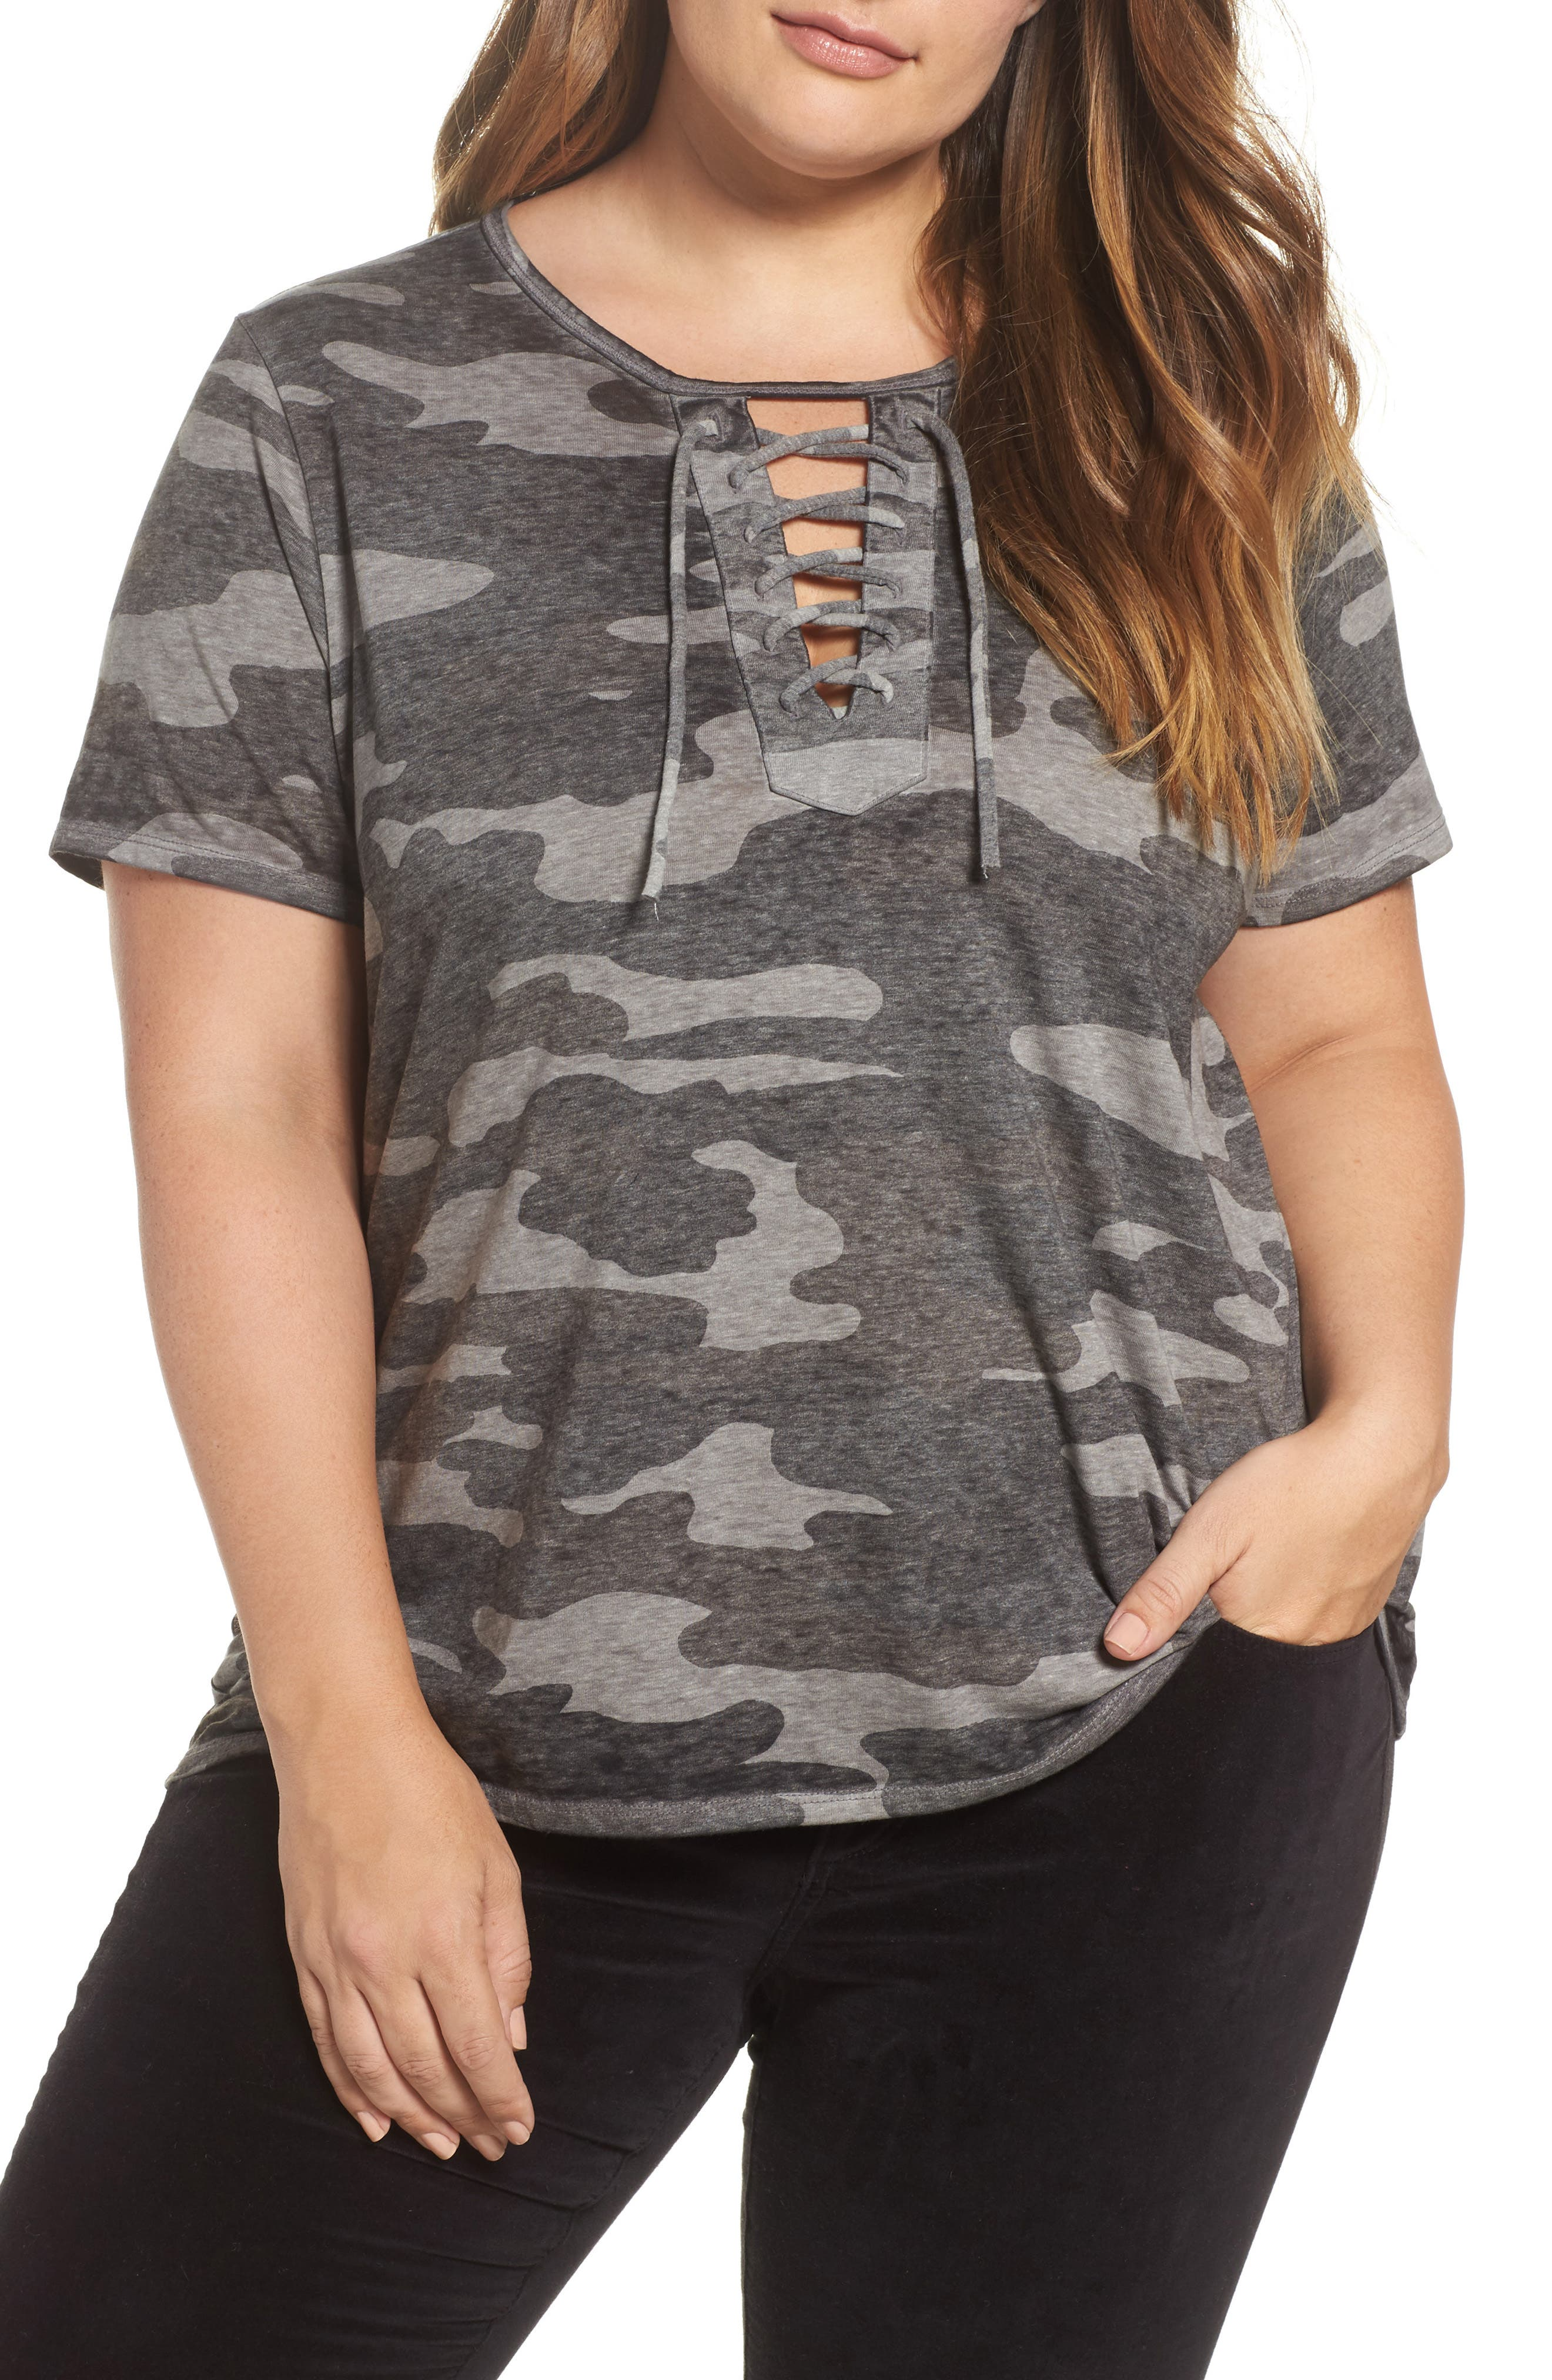 LUCKY BRAND, Lace-Up Camo Tee, Main thumbnail 1, color, GREY MULTI